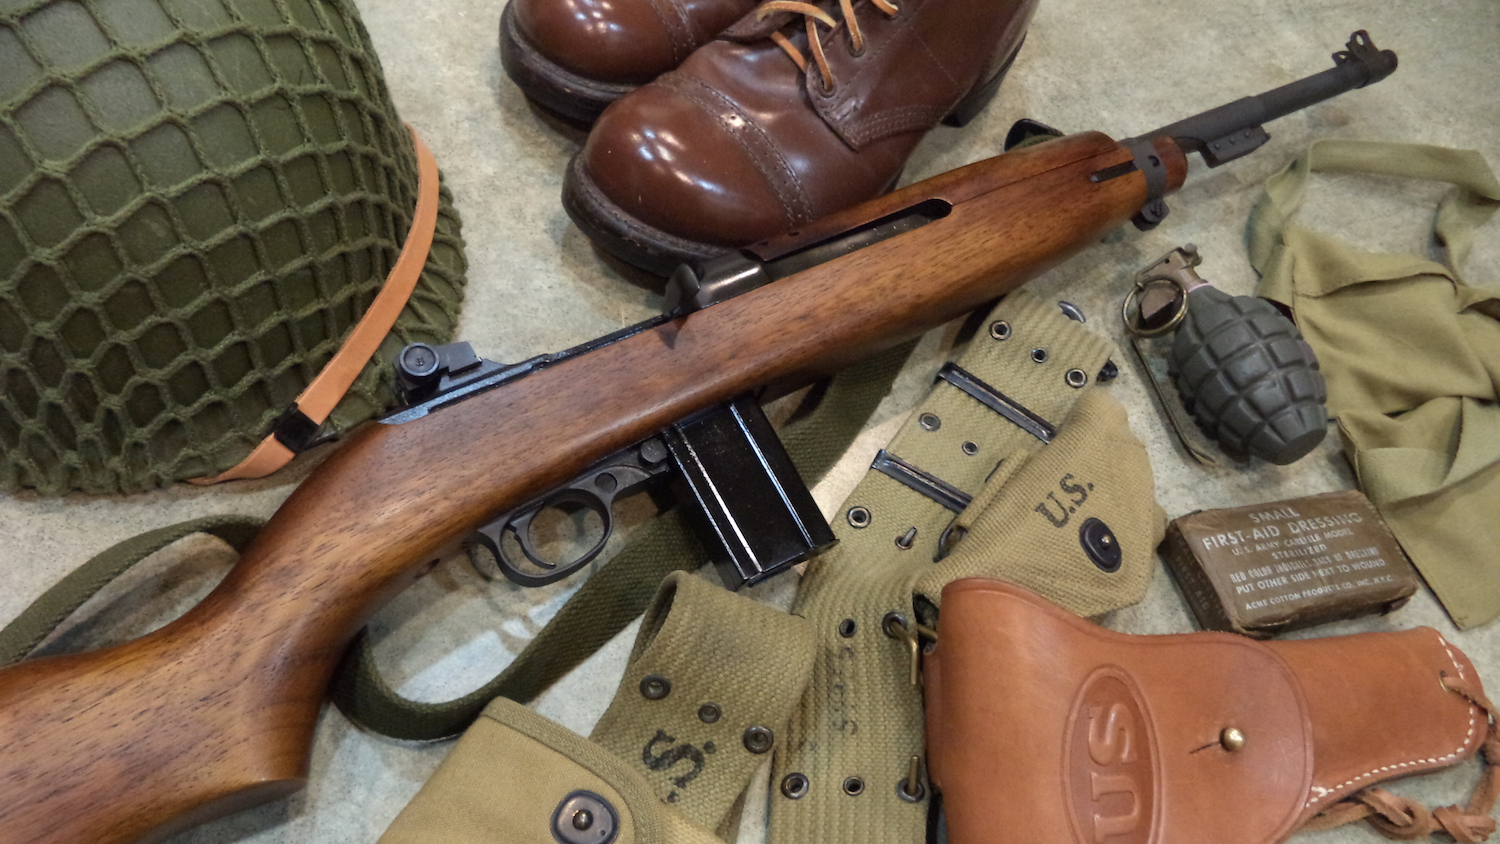 The M1 Carbine: America's 'Light Rifle'